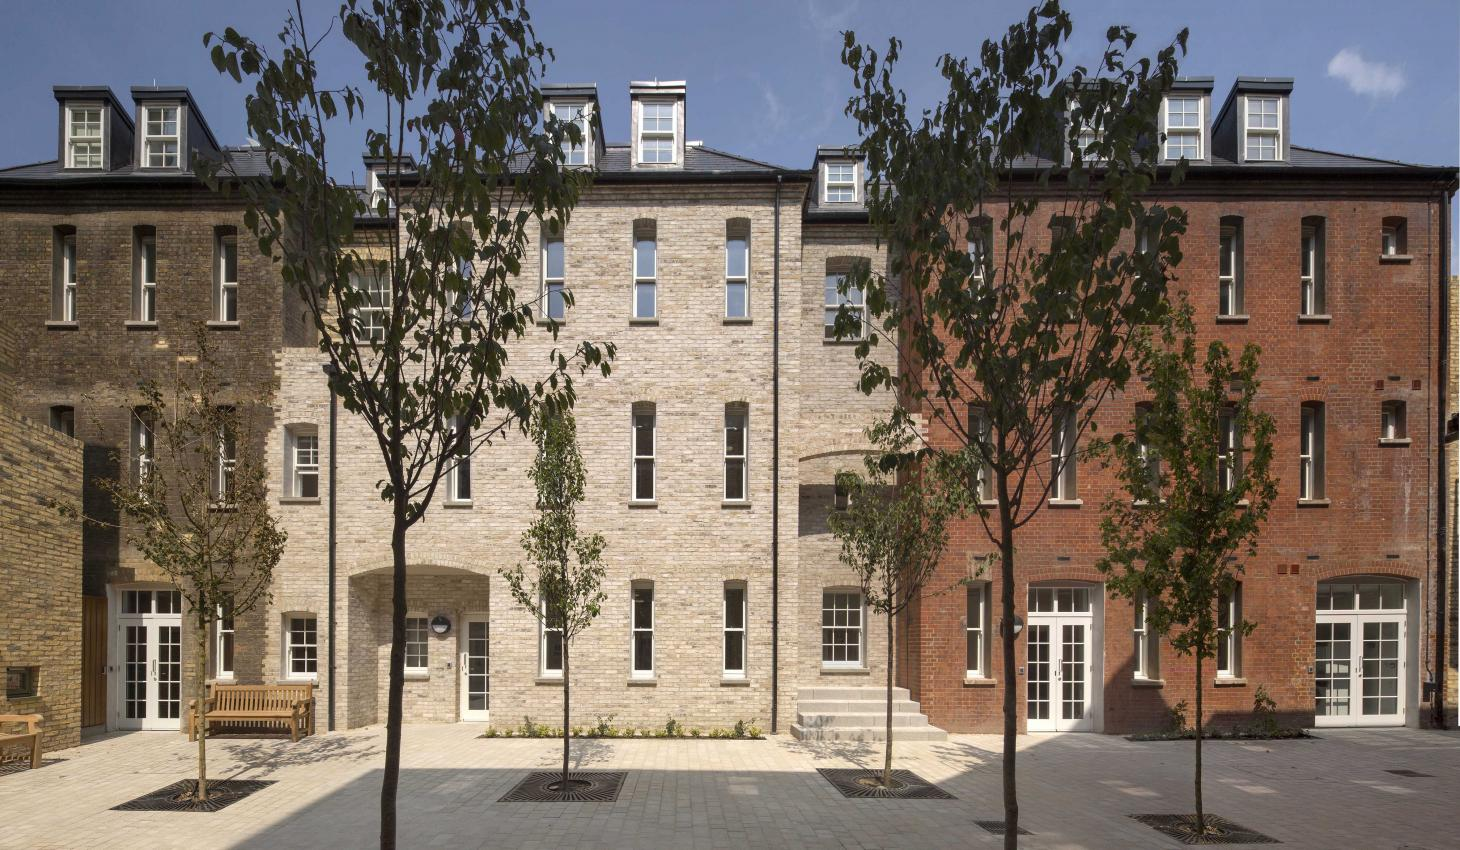 Mount Pleasant Homeless Shelter by Peter Barber Architects